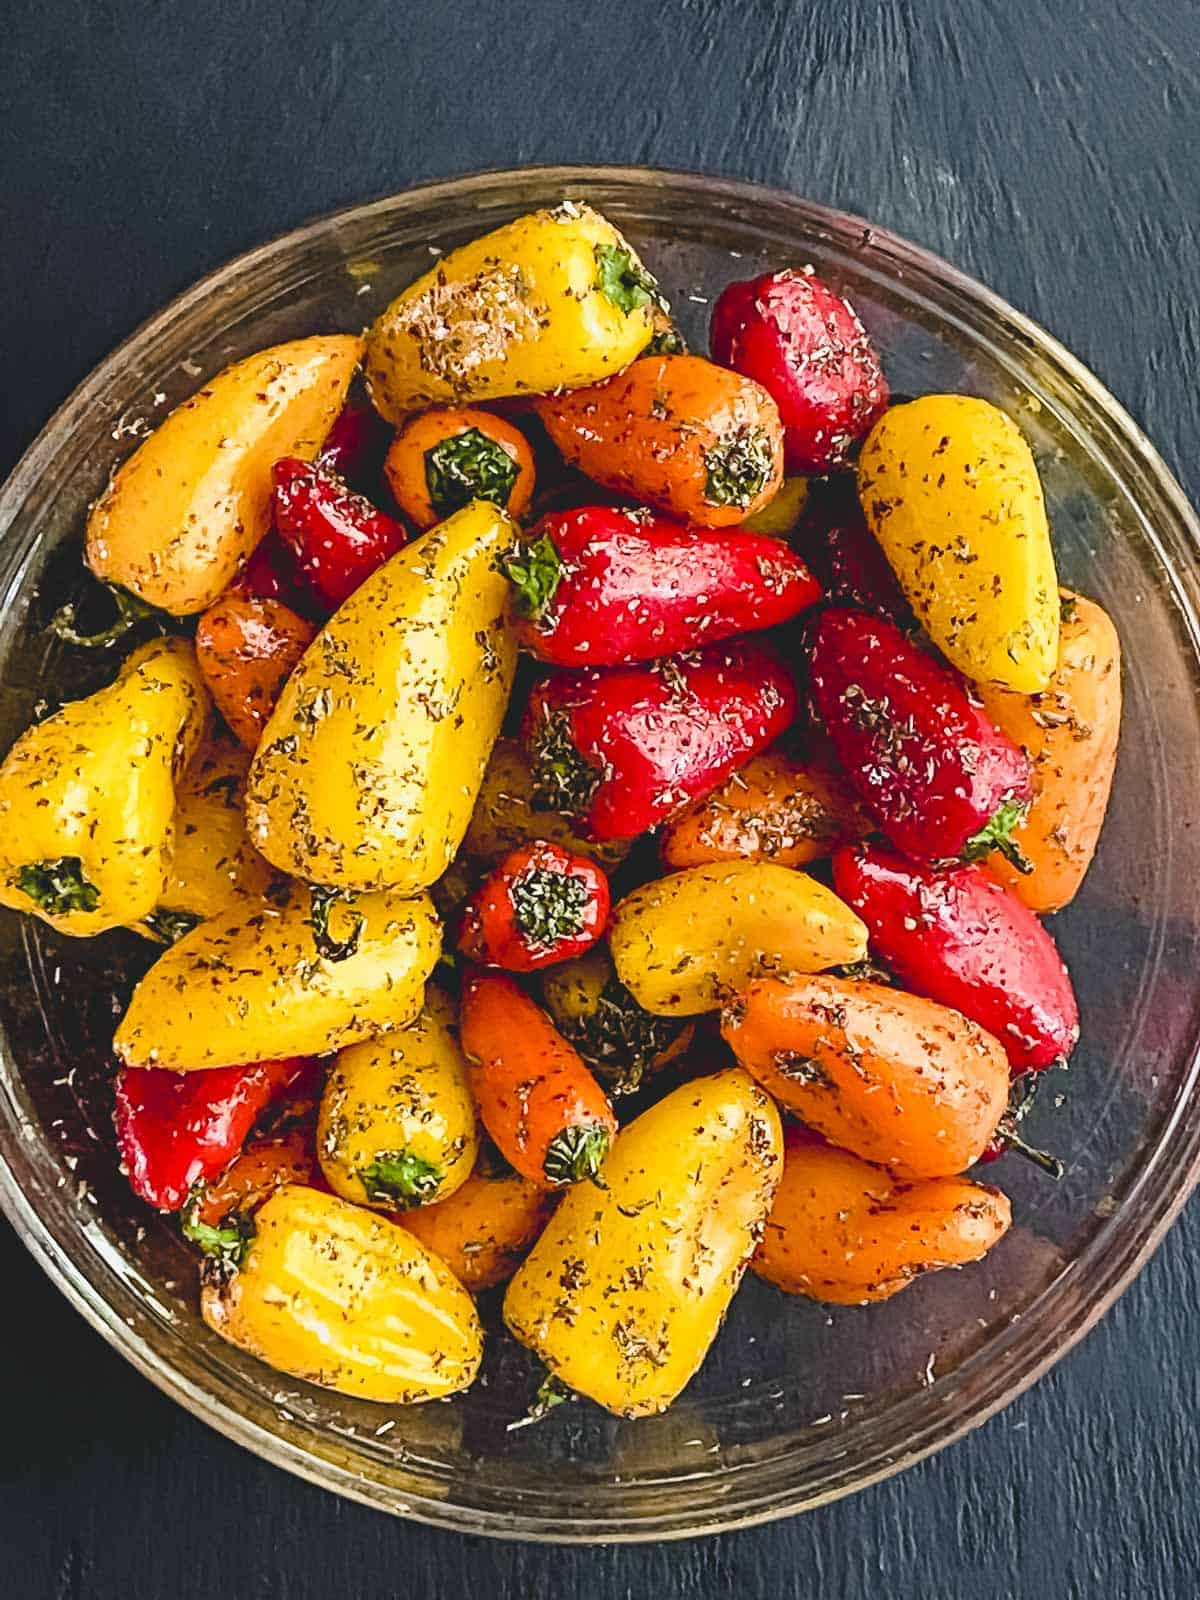 Mini peppers in a bowl with oil and spices